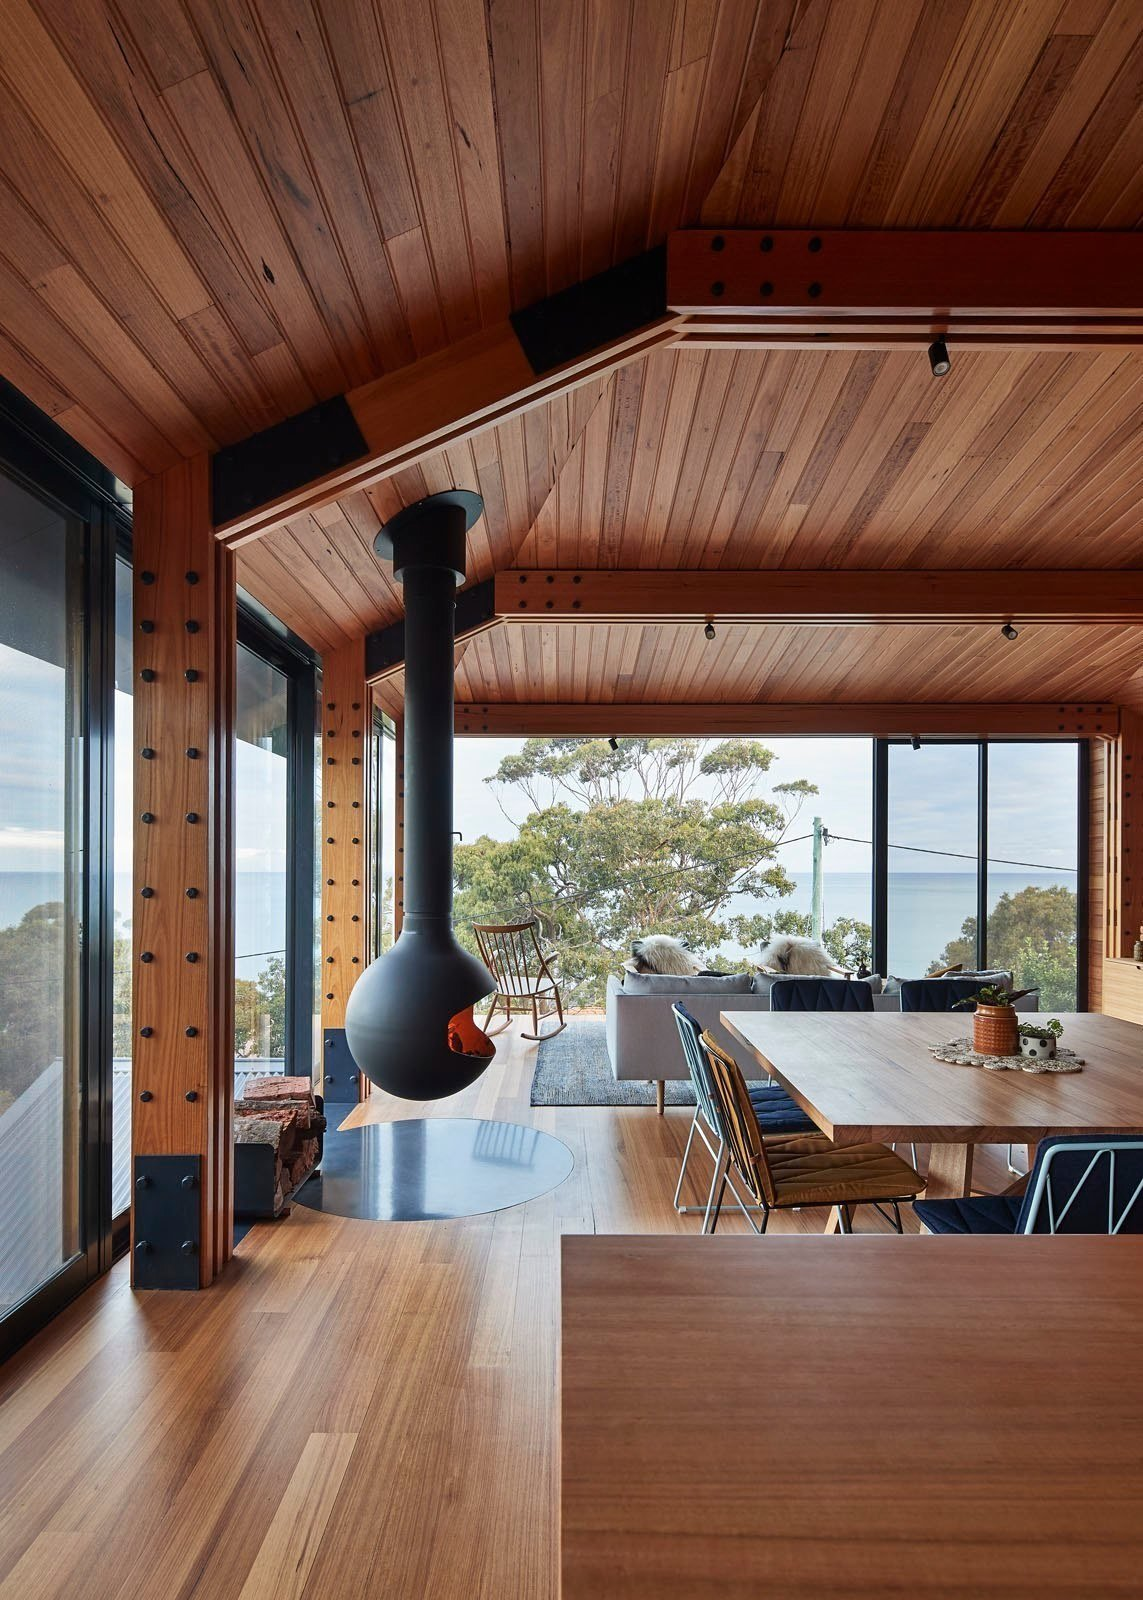 Dorman House from A Great Ocean Road Shack With a View Gets a Sustainable Update